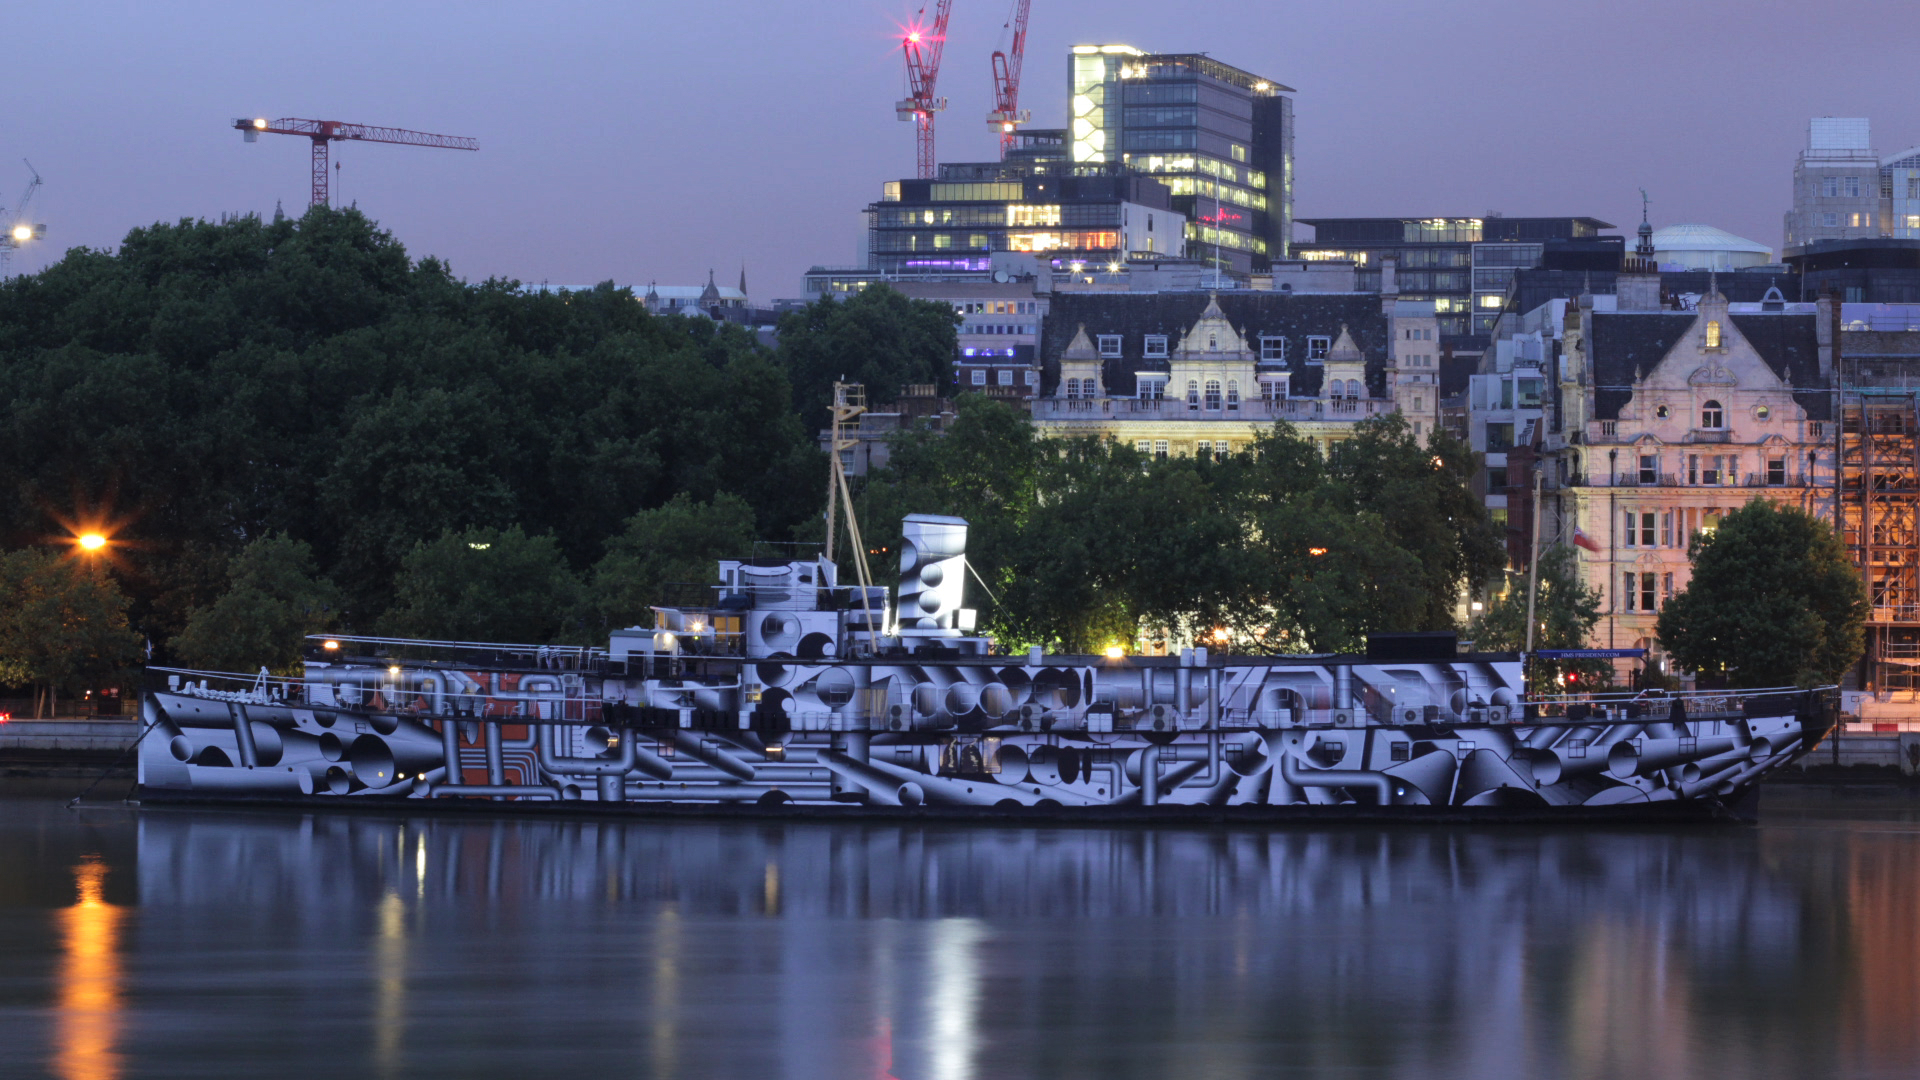 Dazzle Ship, Tobias Rehberger, 2014. Image credit - David Kew